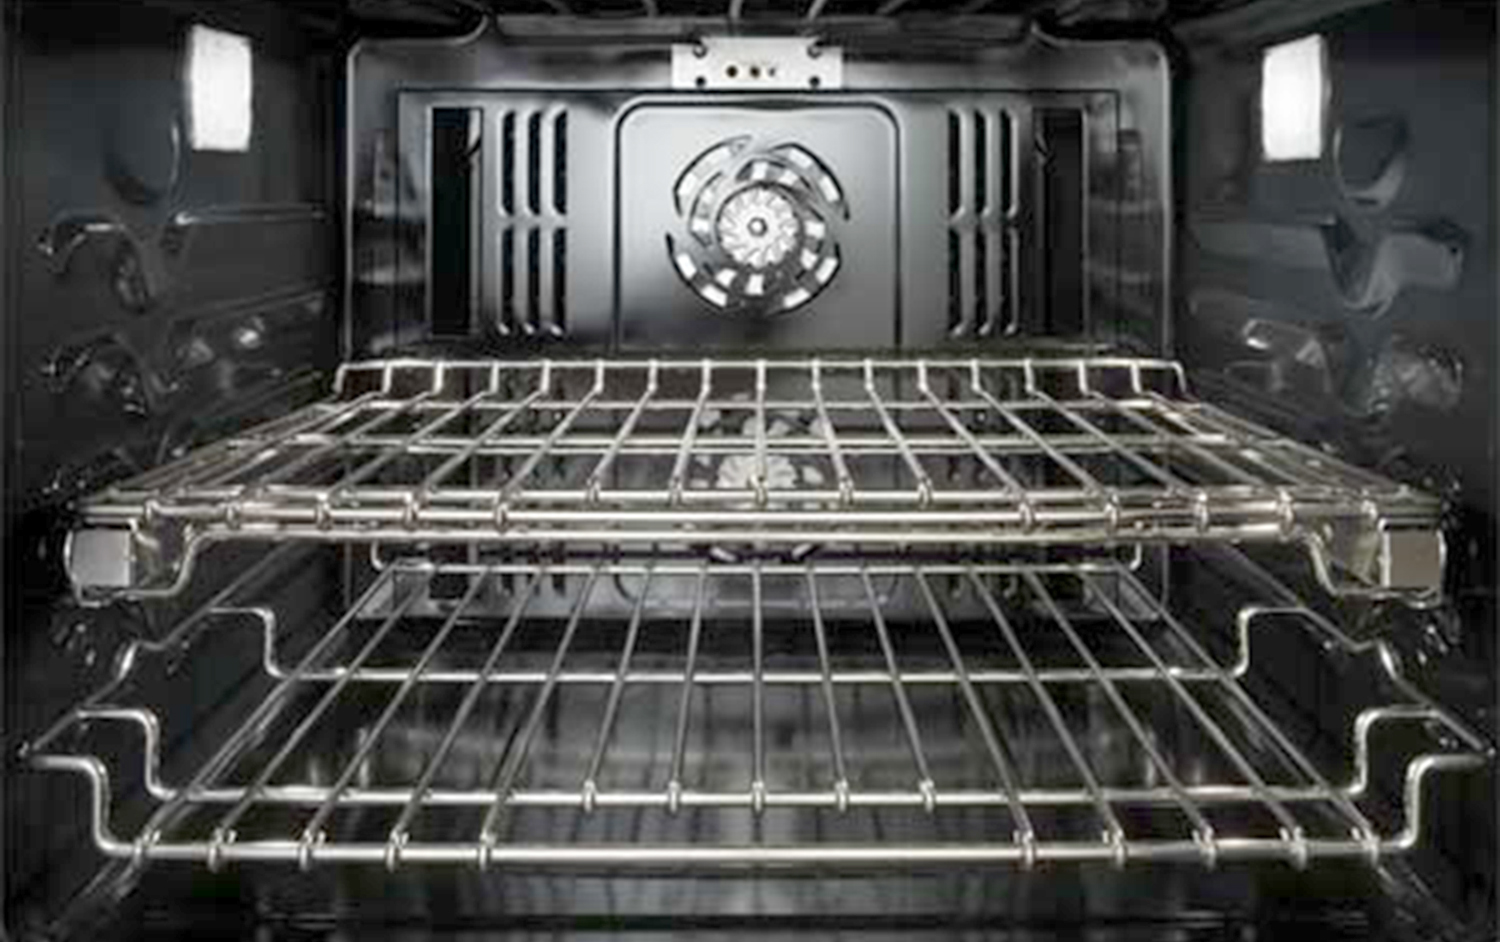 Whirlpool Recalls 40,000 Ovens for Faulty Rack